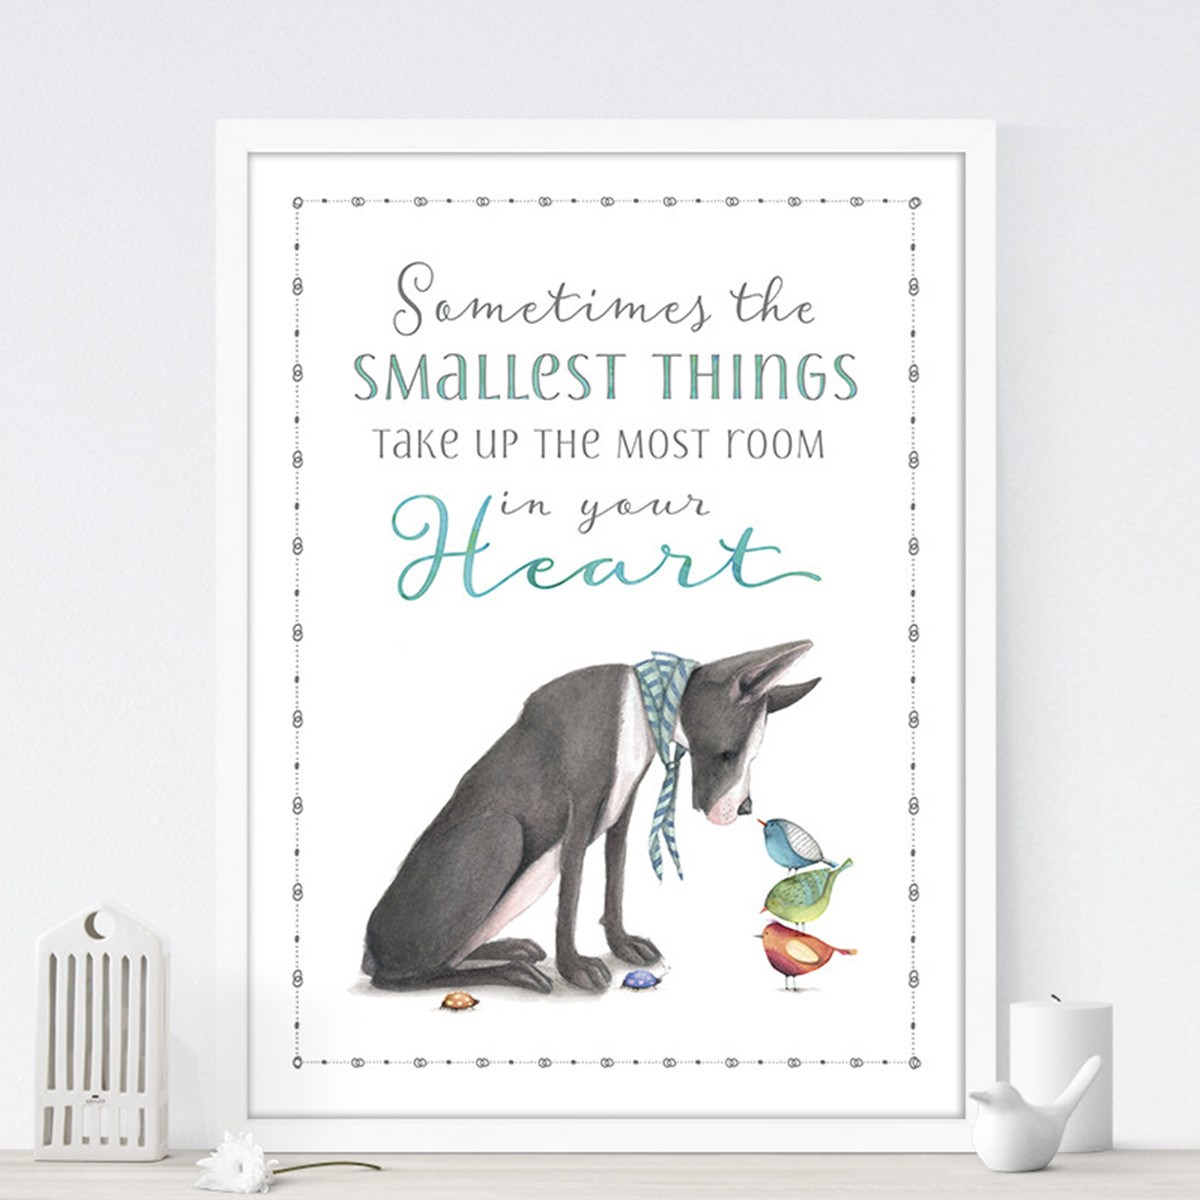 Sometimes the Smallest Things Take up the Most Room in your Heart Wall Art Print